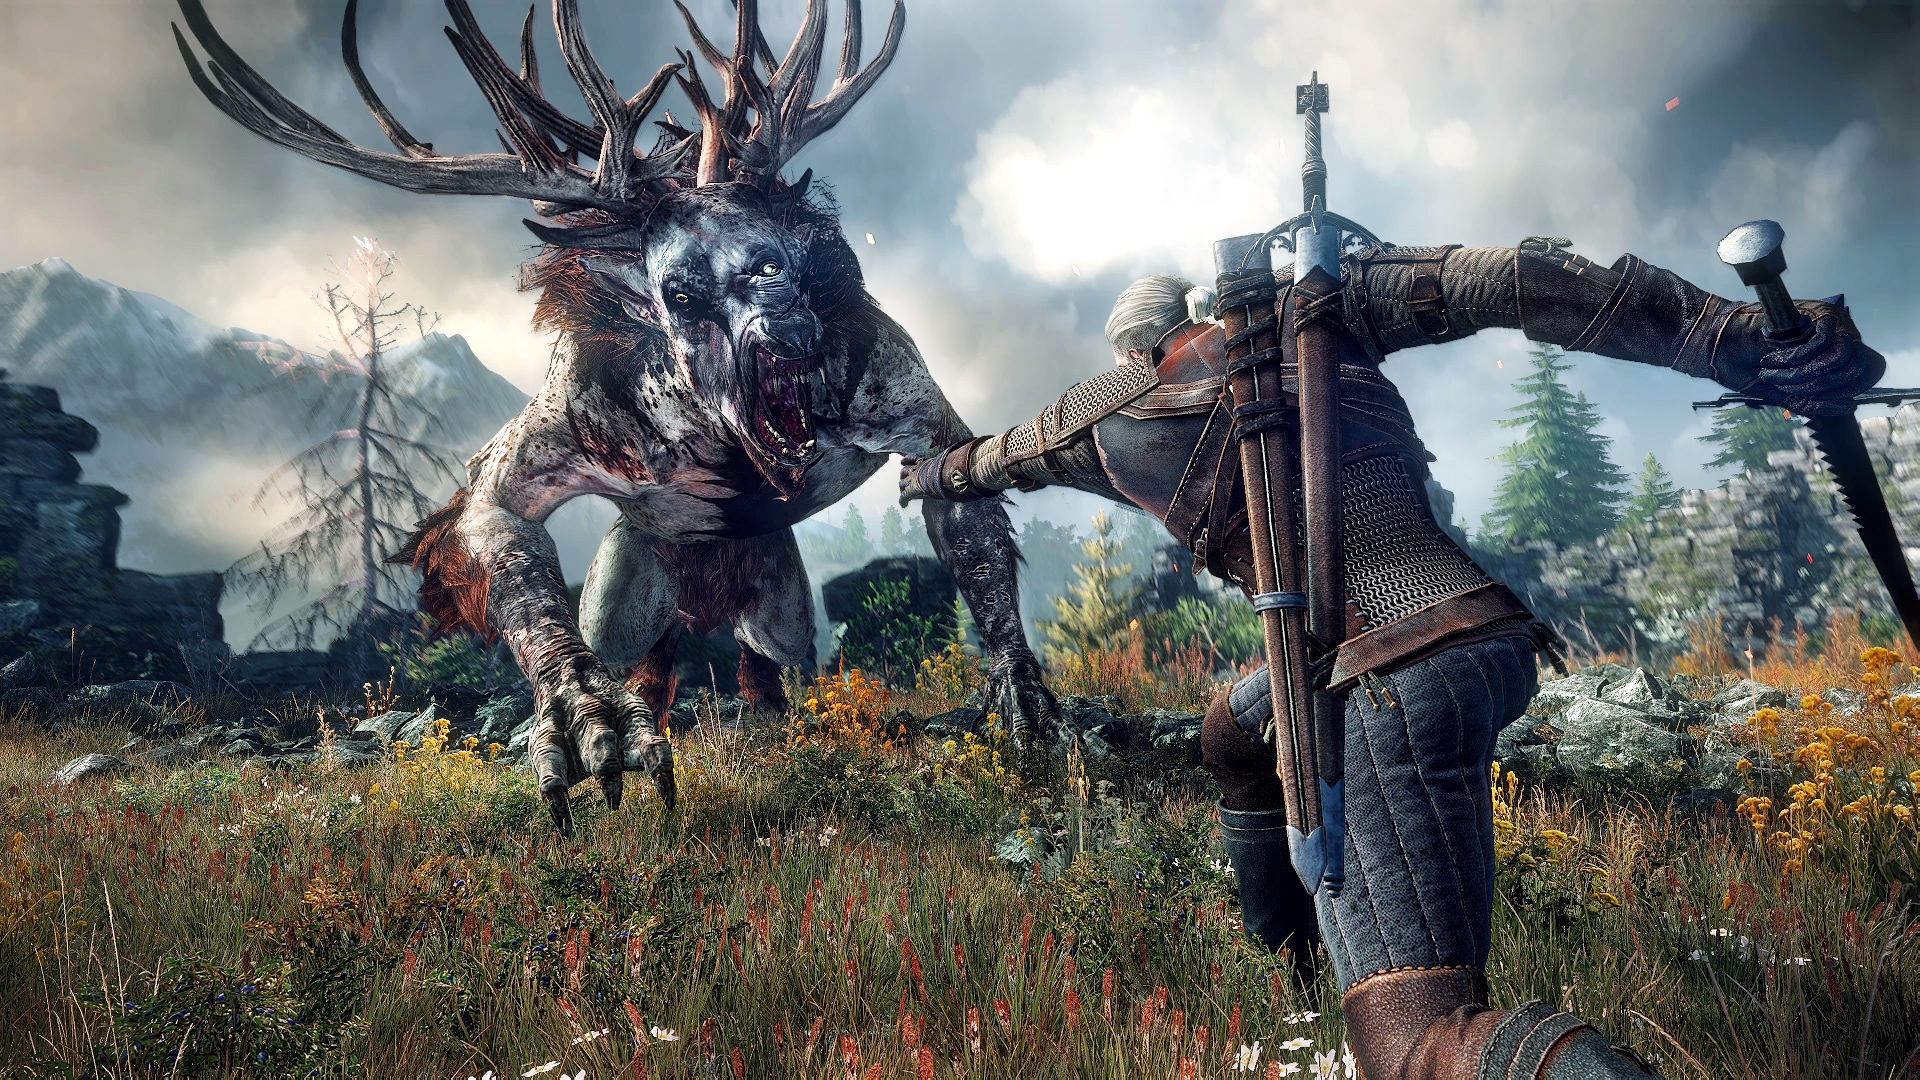 Witcher3 Wild Hunt Hd Free Wallpapers Hd Wallpaper